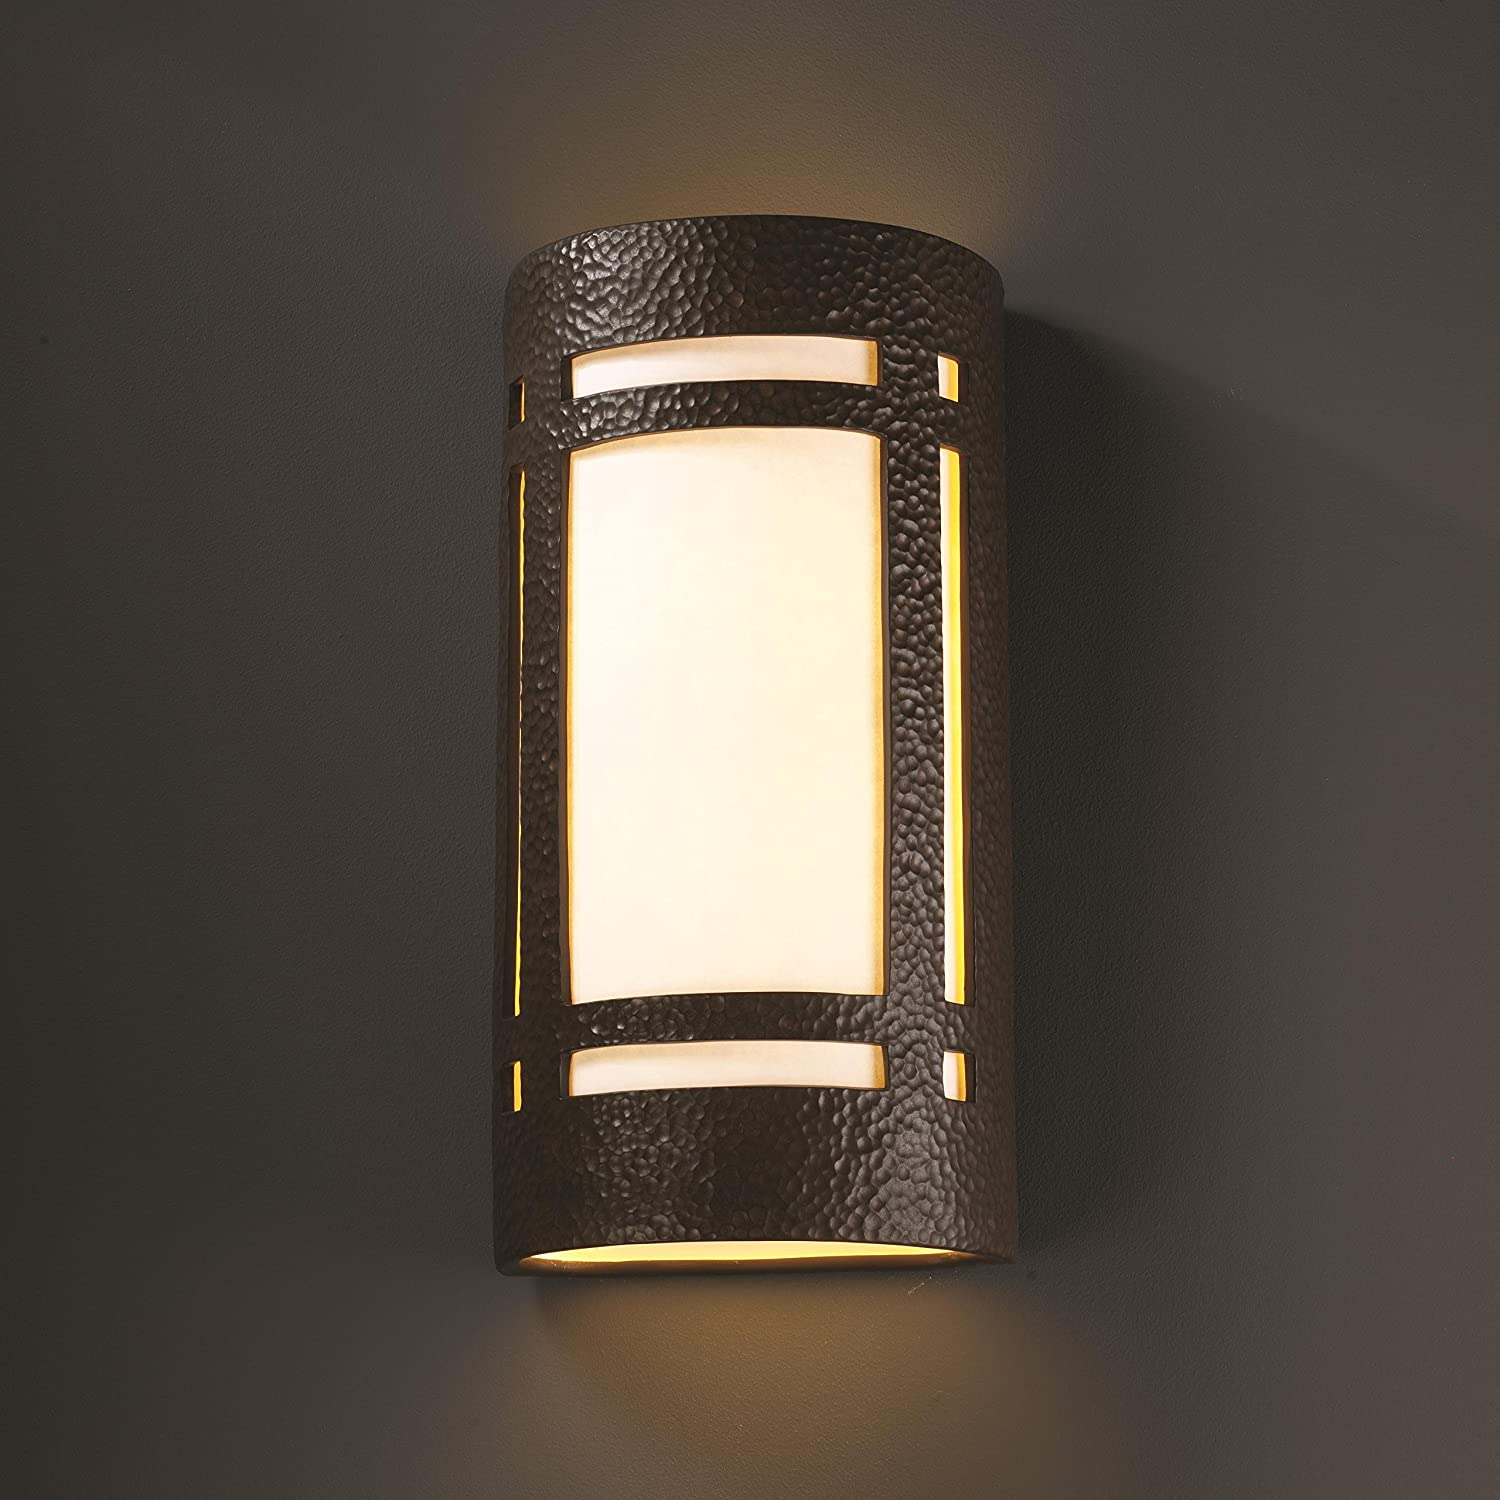 Bisque Finish Justice Design Group Ambiance Collection 2-Light Wall Sconce